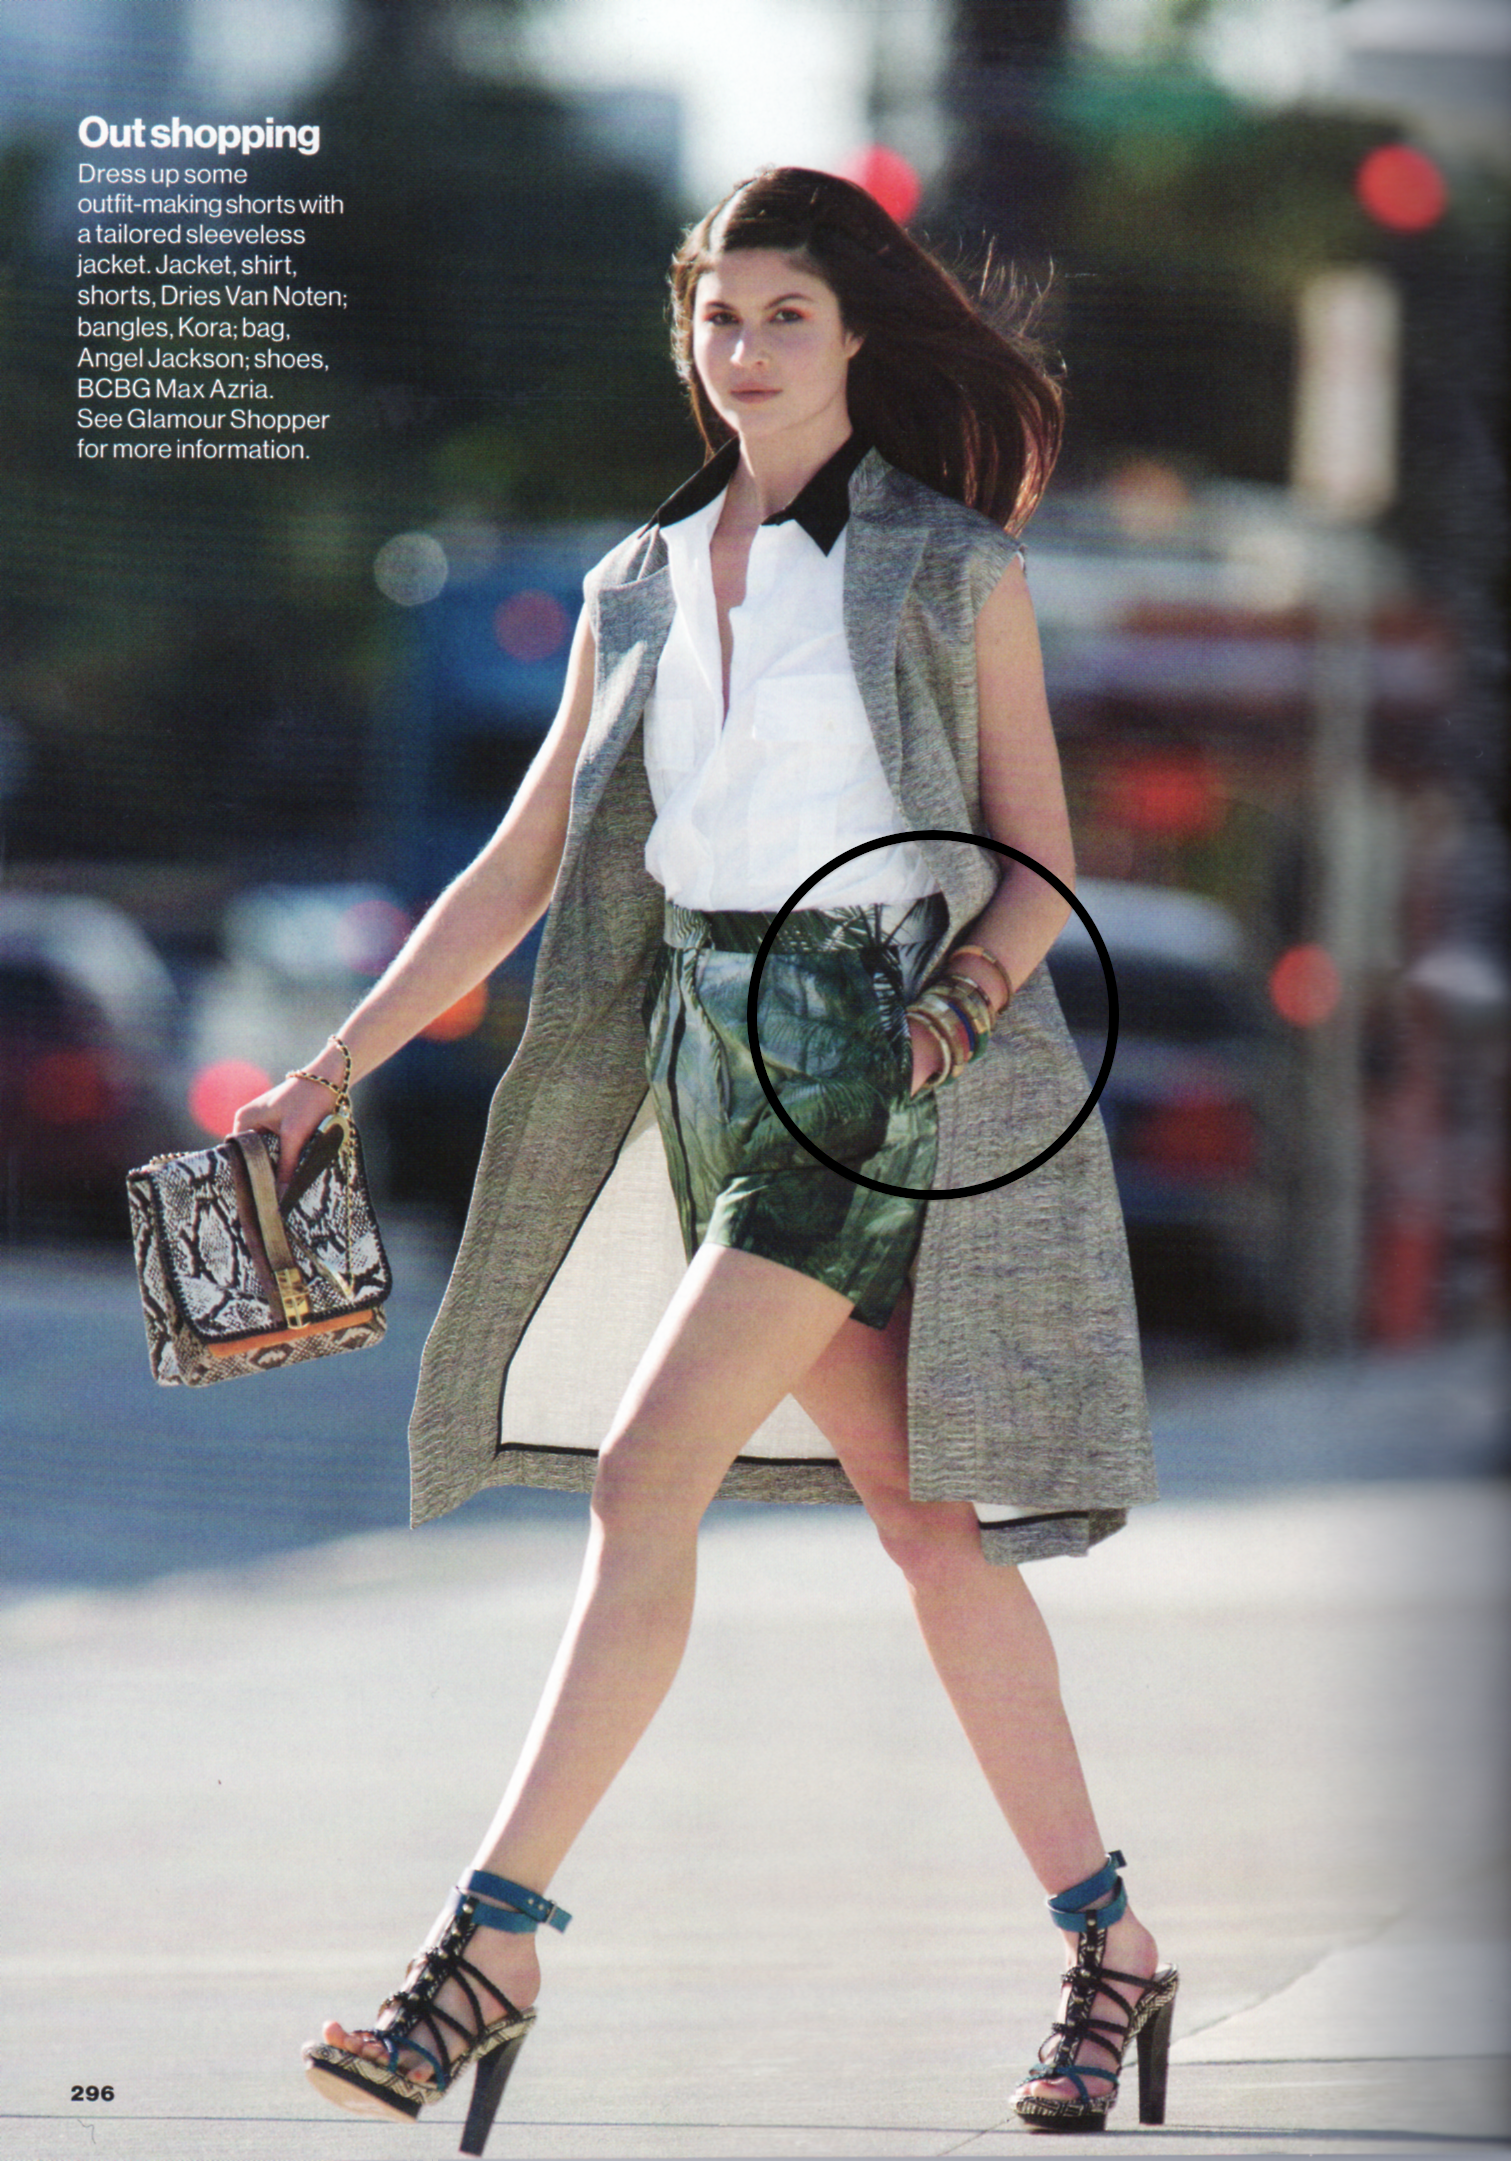 Glamour 1 March 2012.png